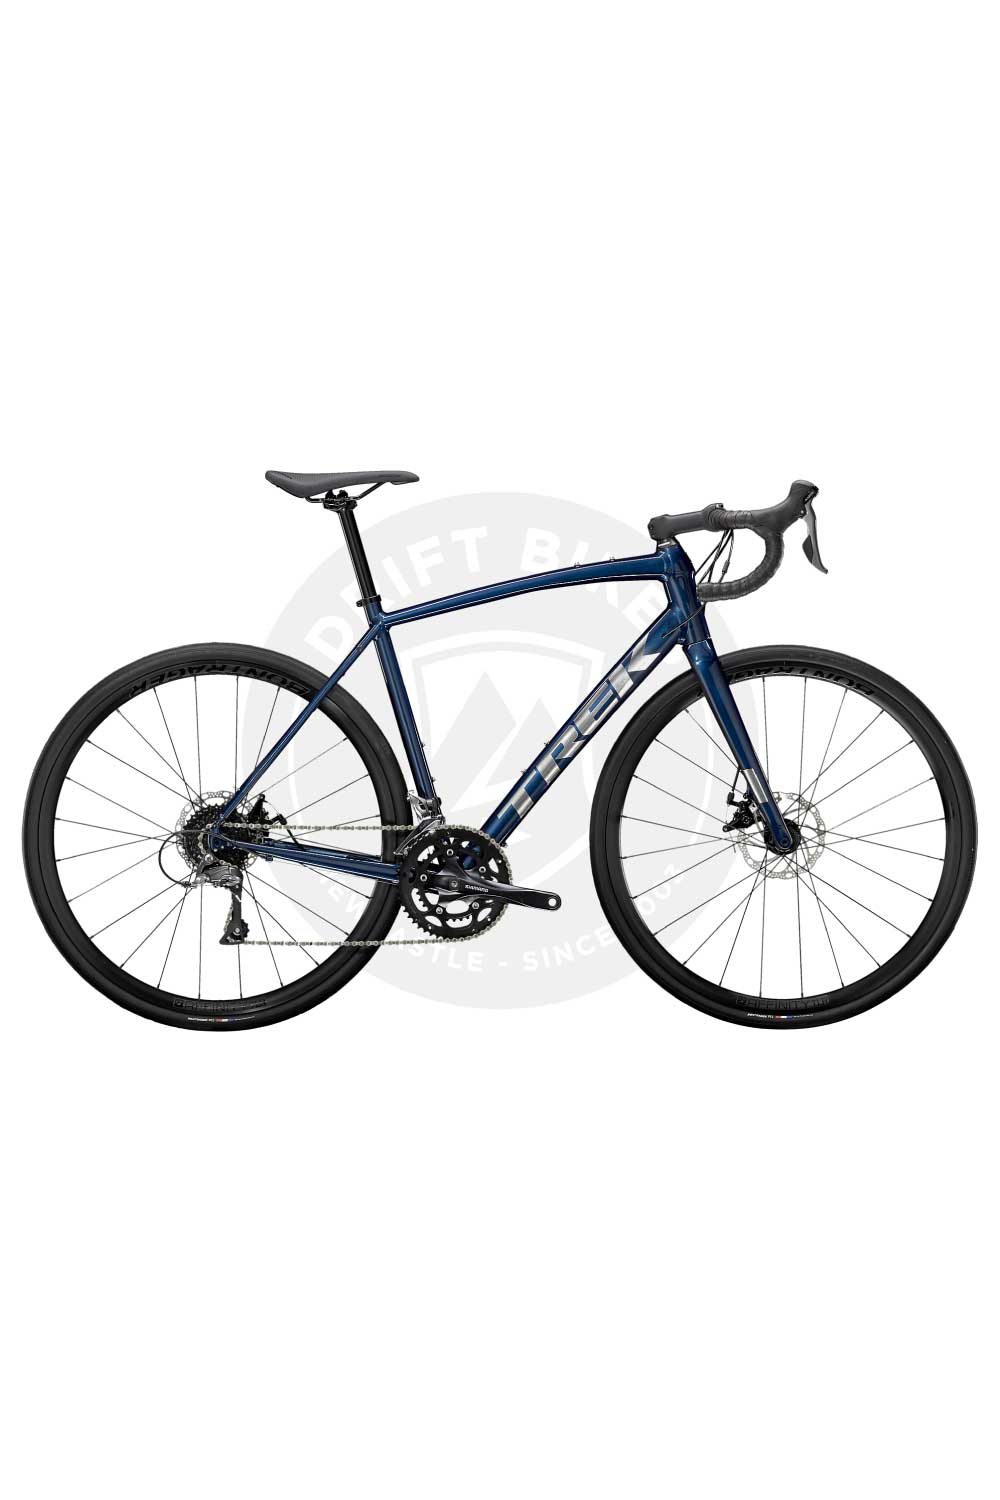 TREK 2021 Domane AL 2 Disc Road Bike